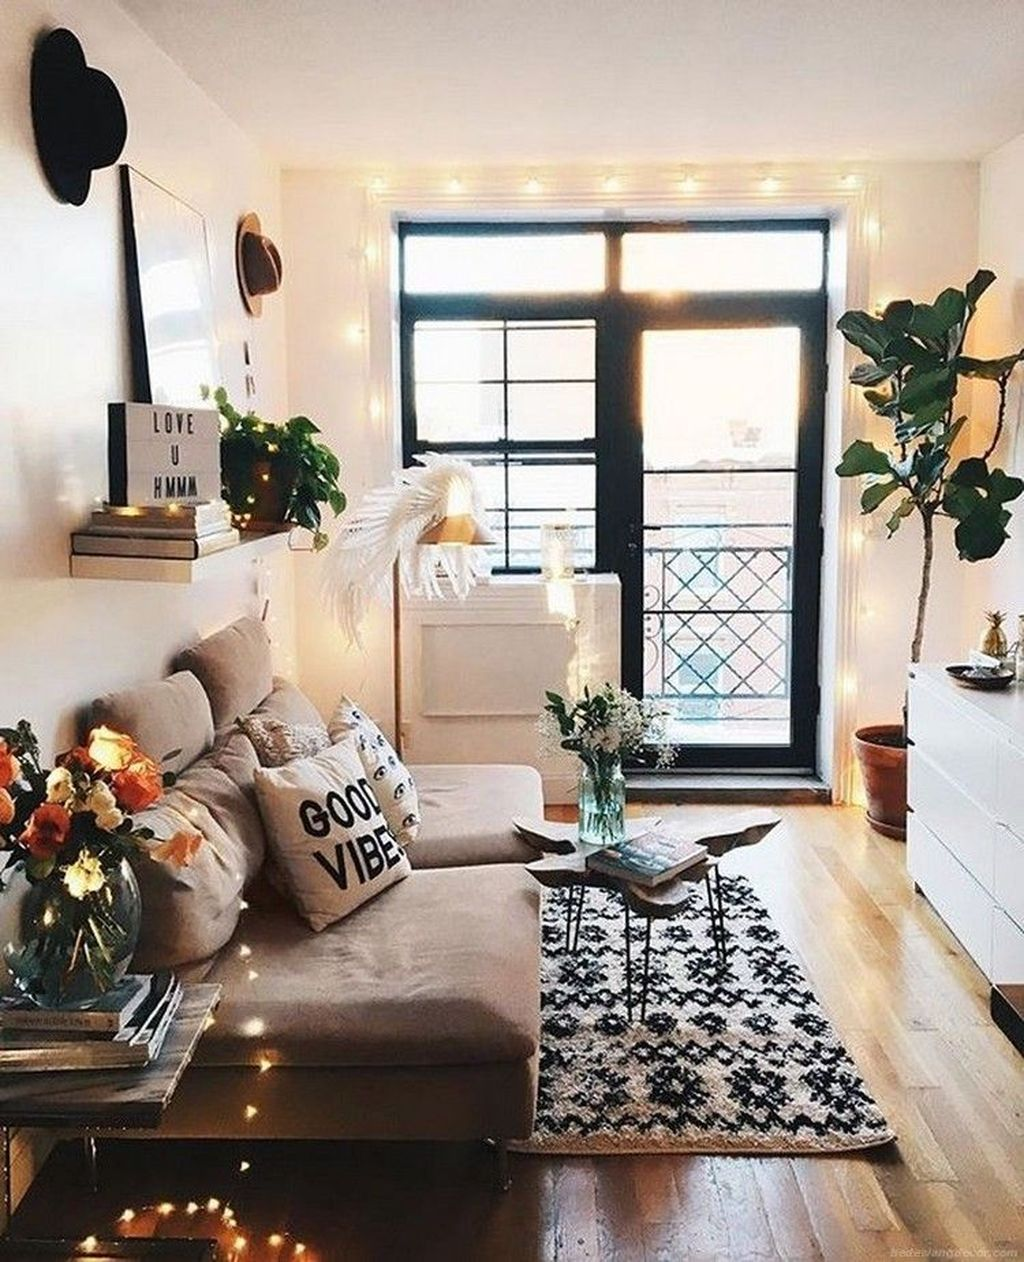 34 The Best Rustic Bohemian Living Room Decor Ideas Homyhomee In 2020 Living Room Decor Apartment Small Apartment Living Room Small Living Room Decor